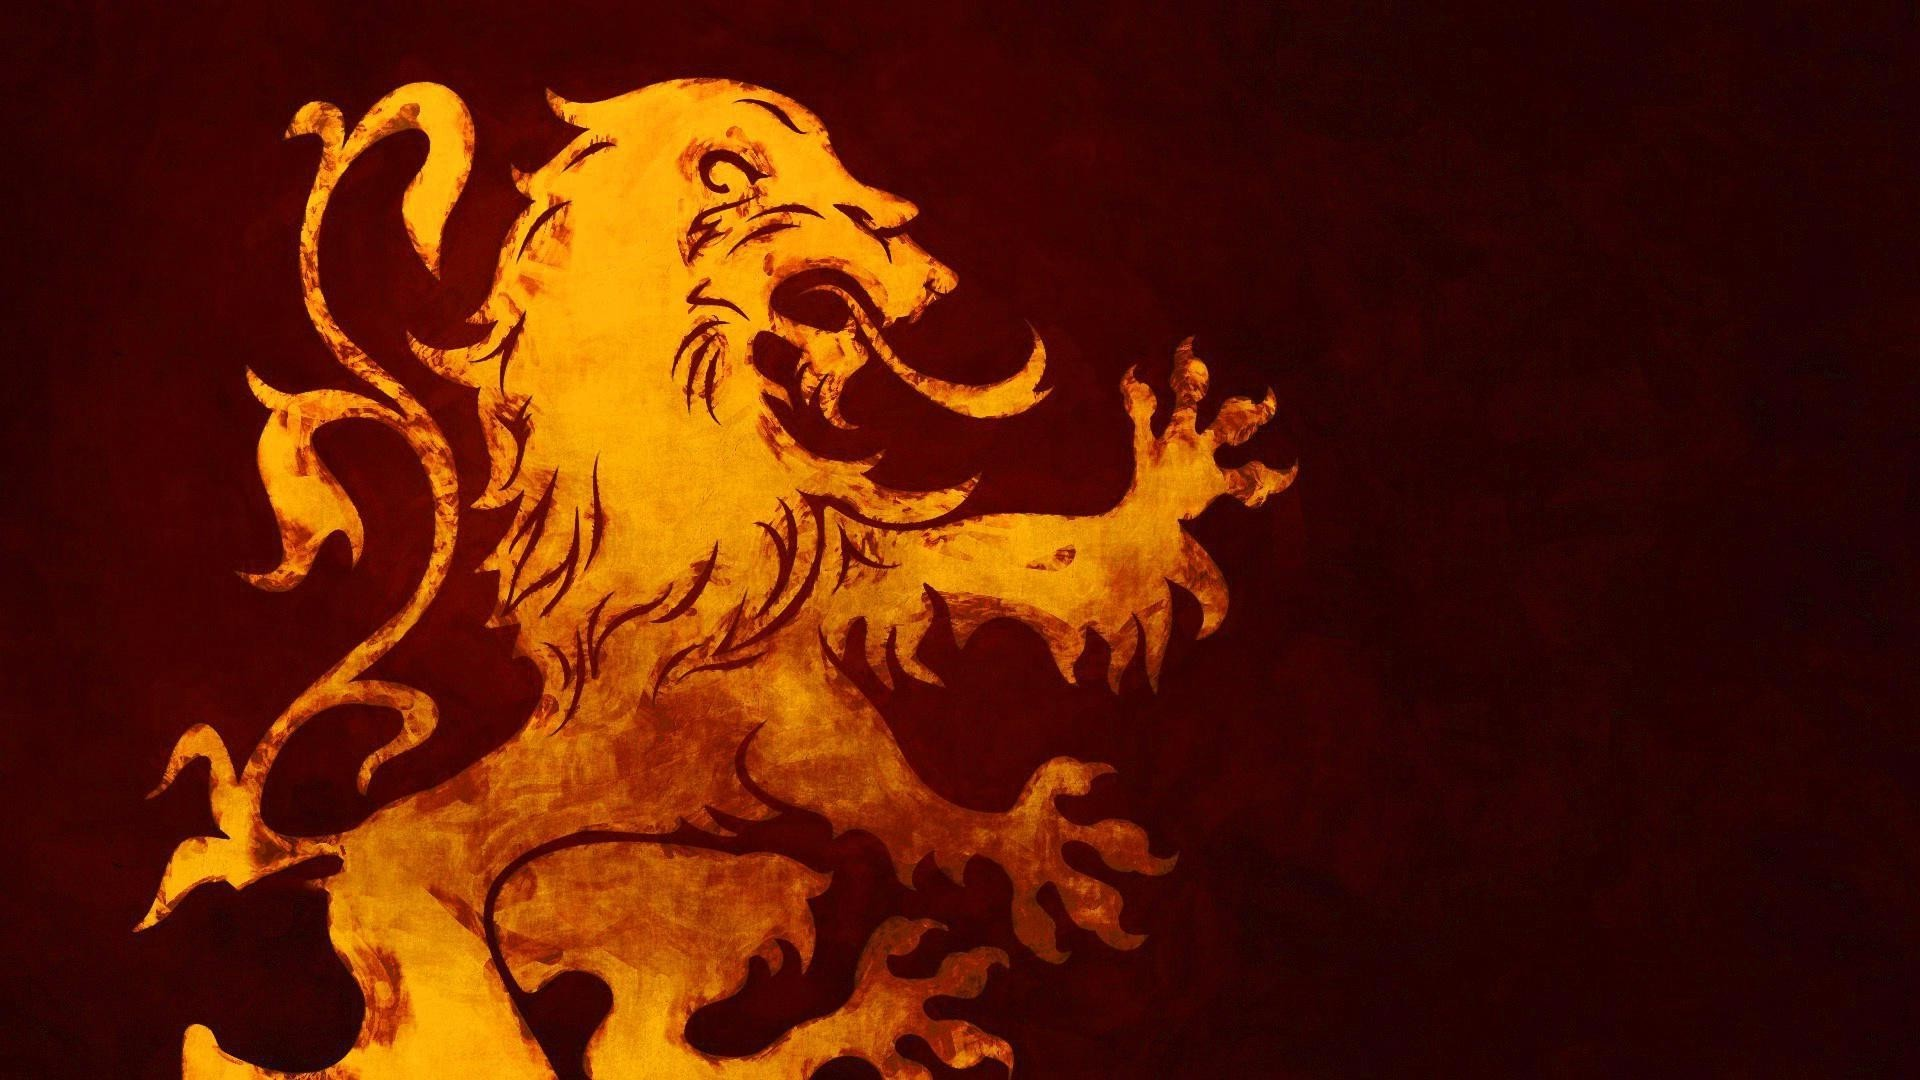 A Song Of Ice And Fire, Game Of Thrones, House Lannister, - Game Of Thrones Lannister Background , HD Wallpaper & Backgrounds